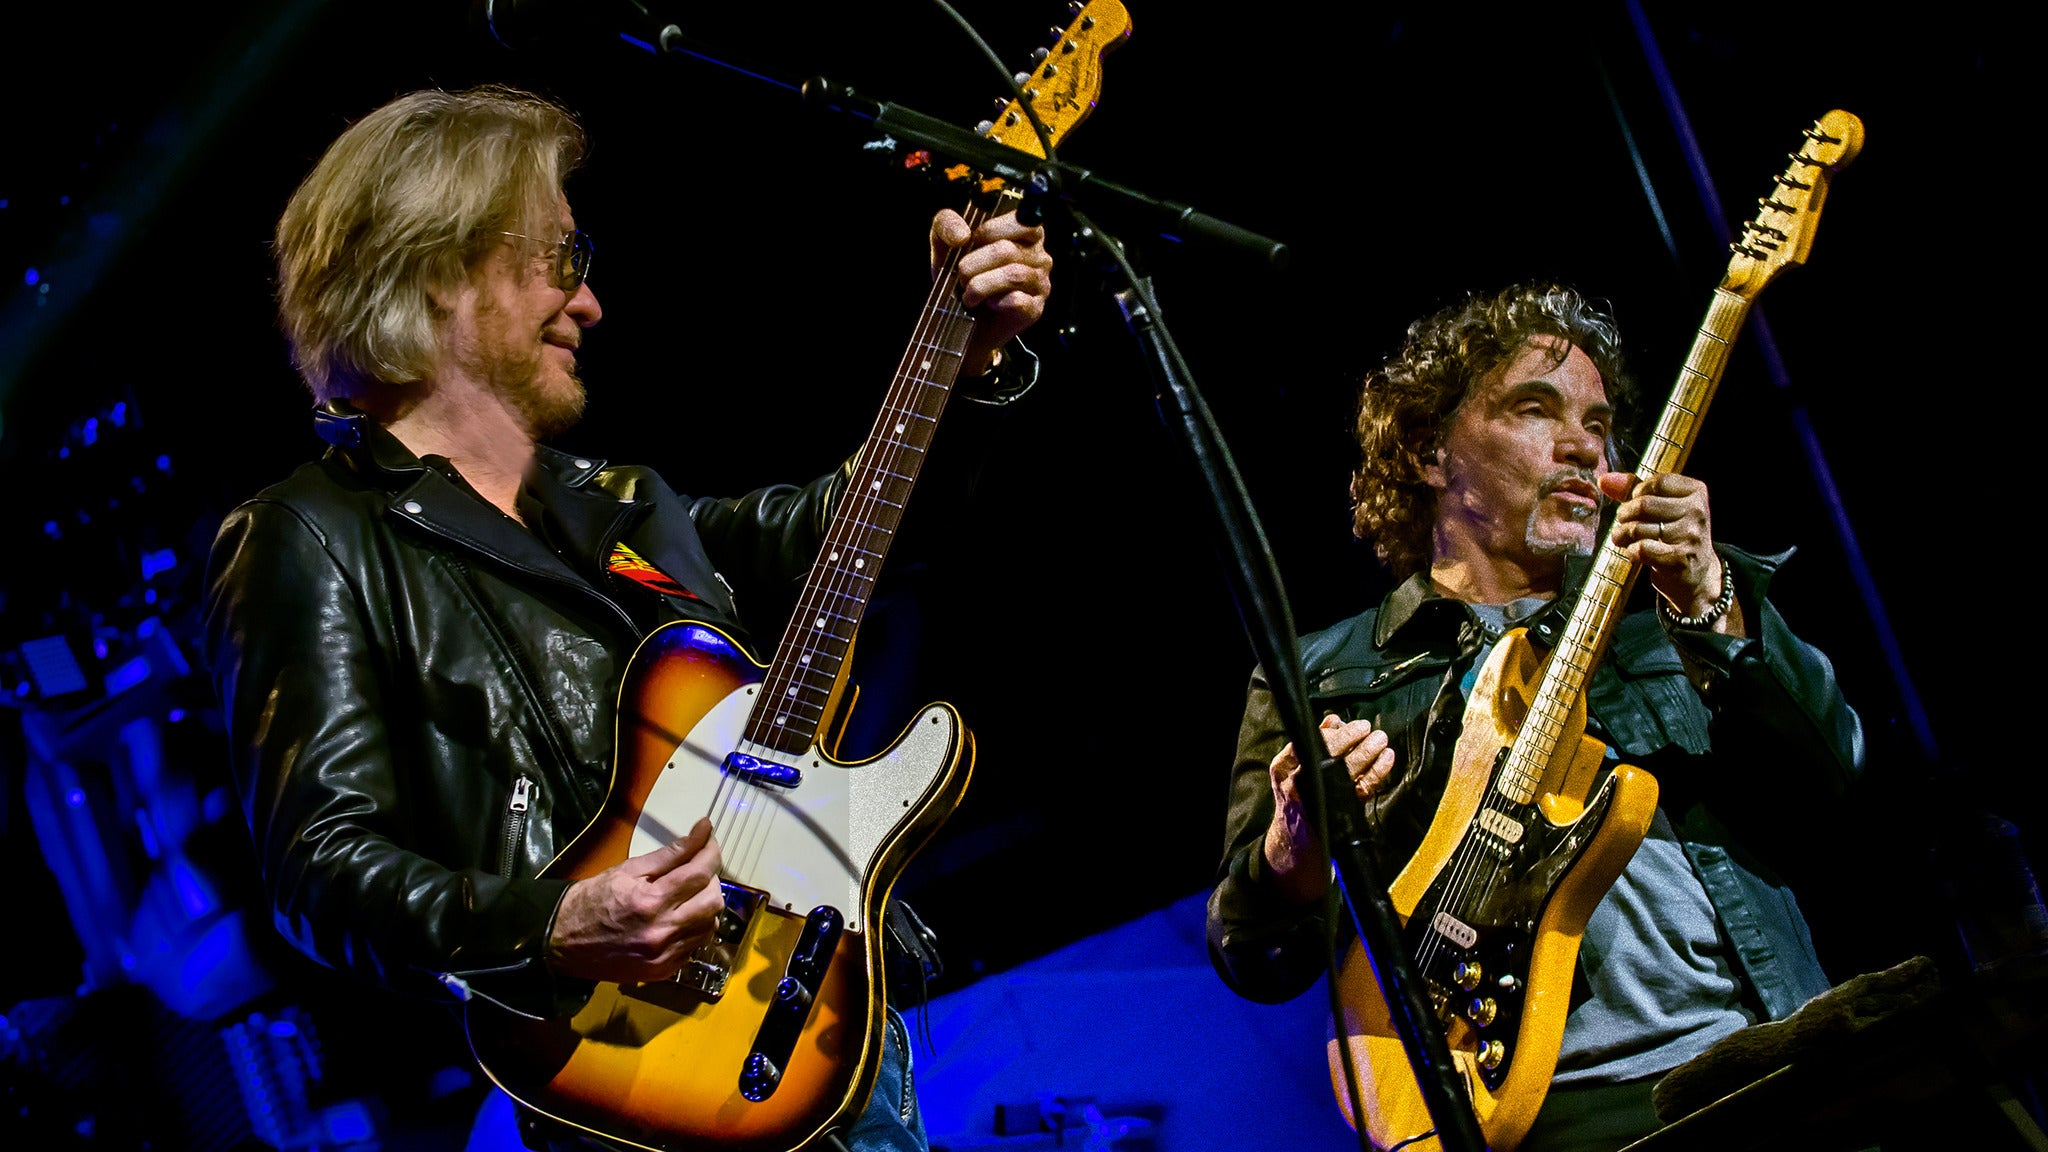 Daryl Hall & John Oates and Train at BB&T Center